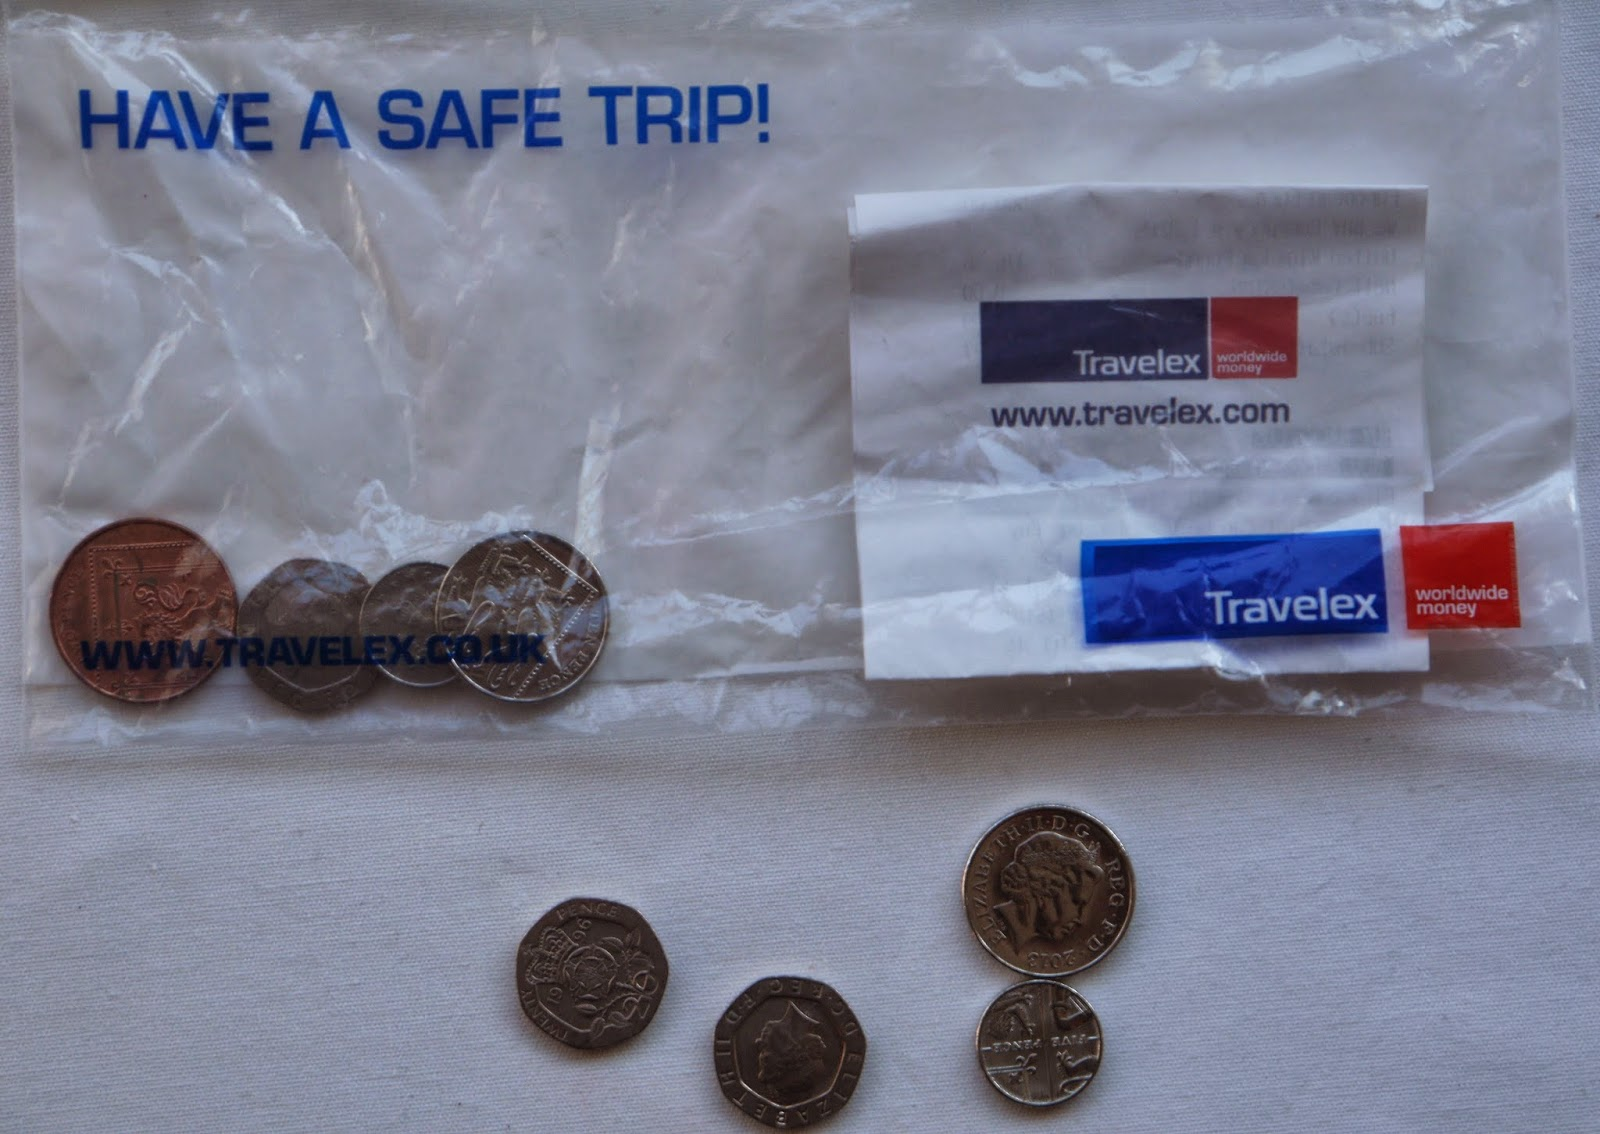 Travelex Plastic Wallet with loose coins